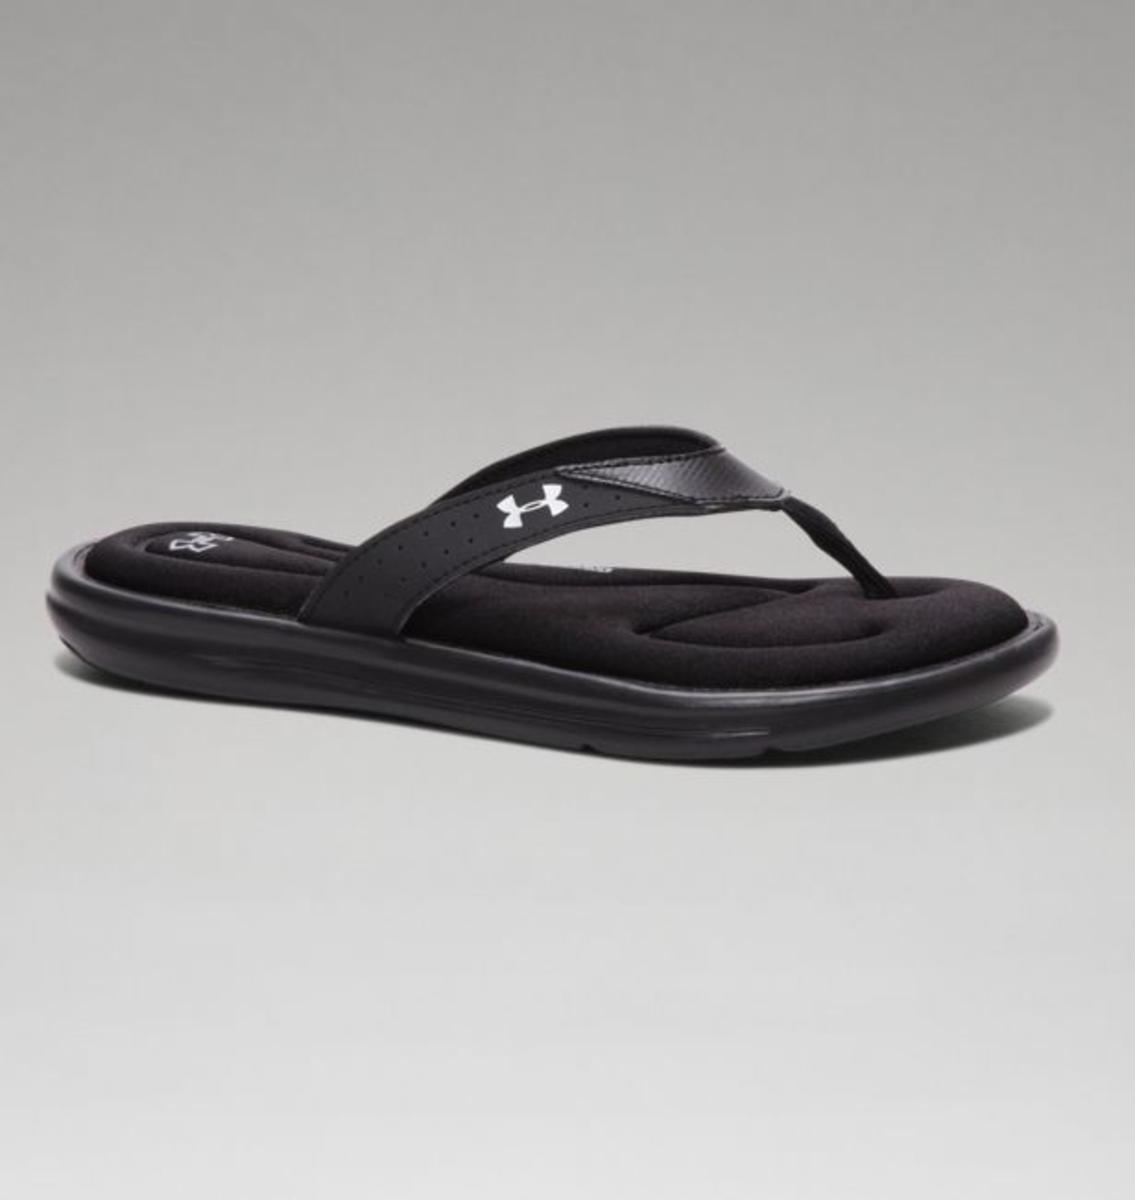 298ed07bab2 Under Armour Women s UA Marbella V Sandals - The Warming Store